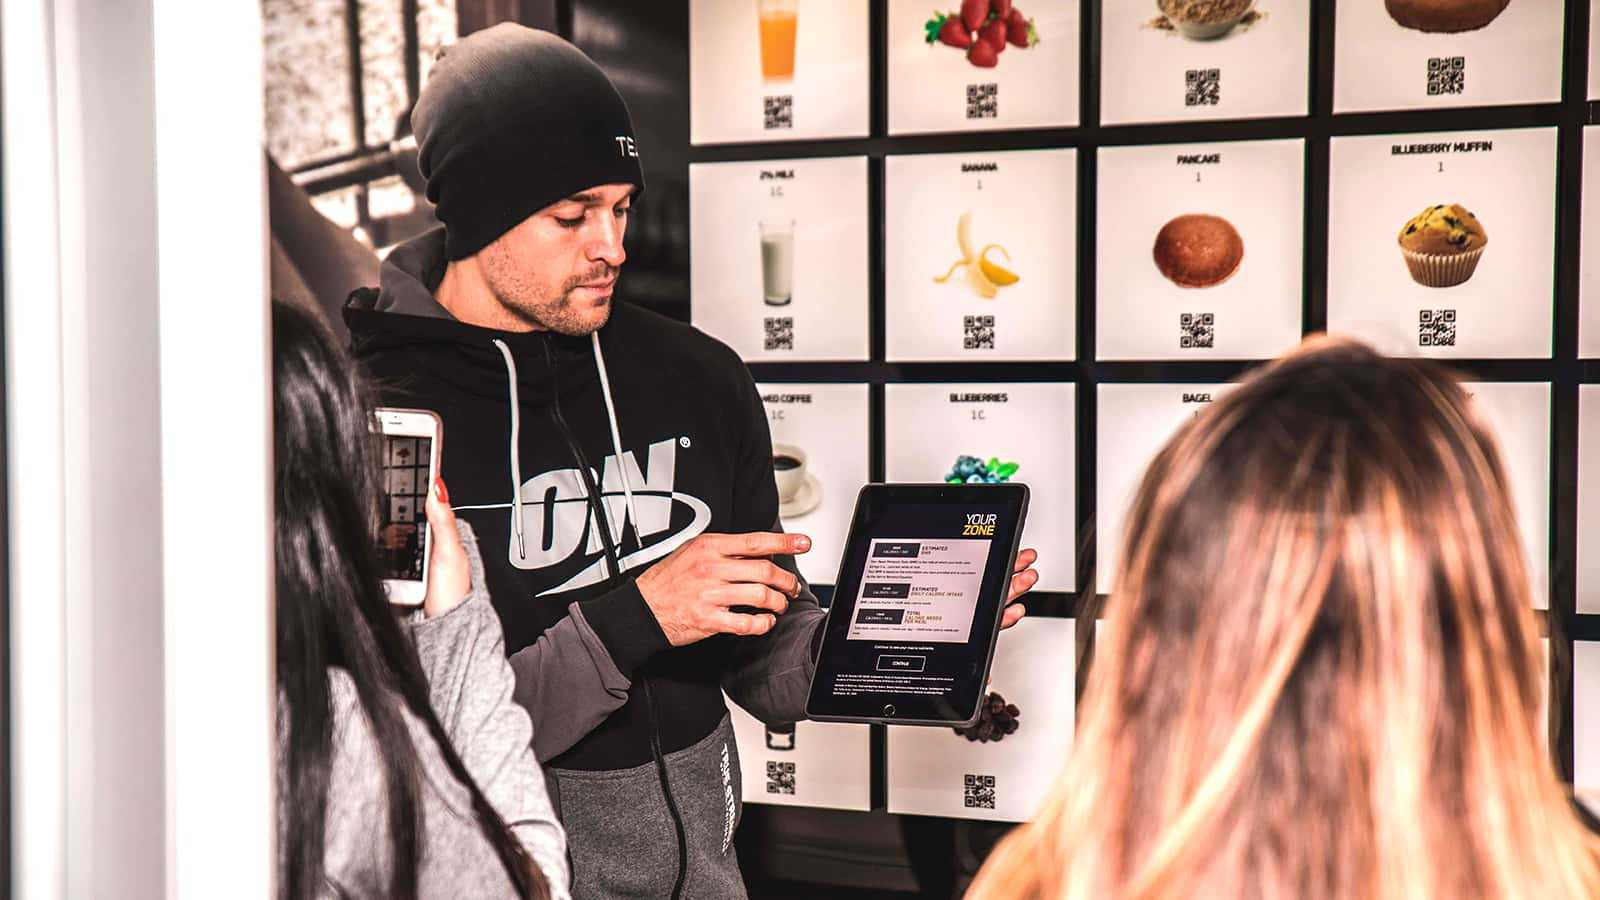 ON Ambassador instructs at the FUEL station at the Find Your Zone Optimum Nutrition mobile tour pop-up shop activation at New York City Marathon 2017.